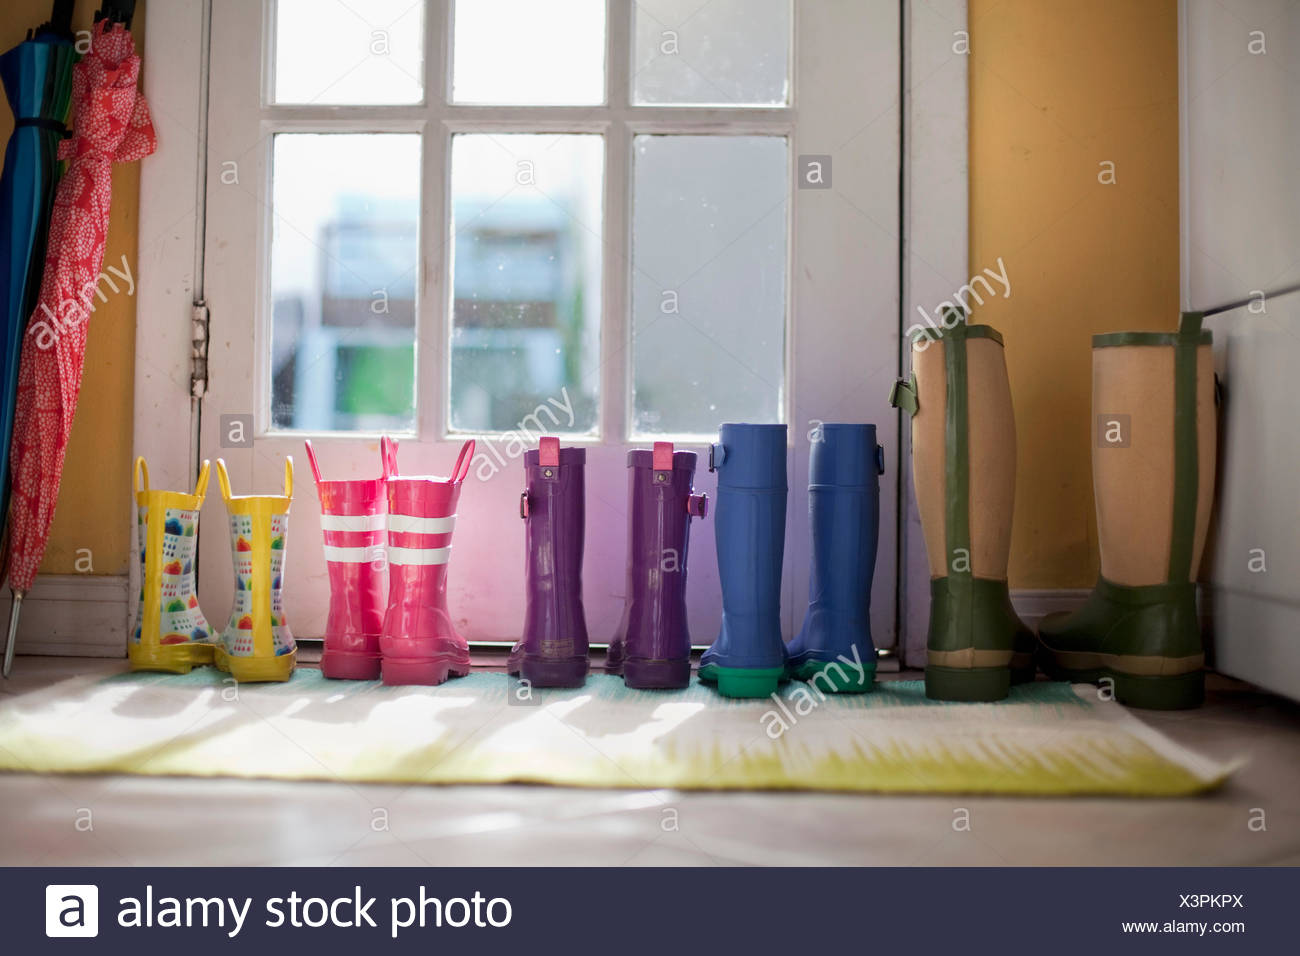 Tidy row of rubber boots at back door - Stock Image